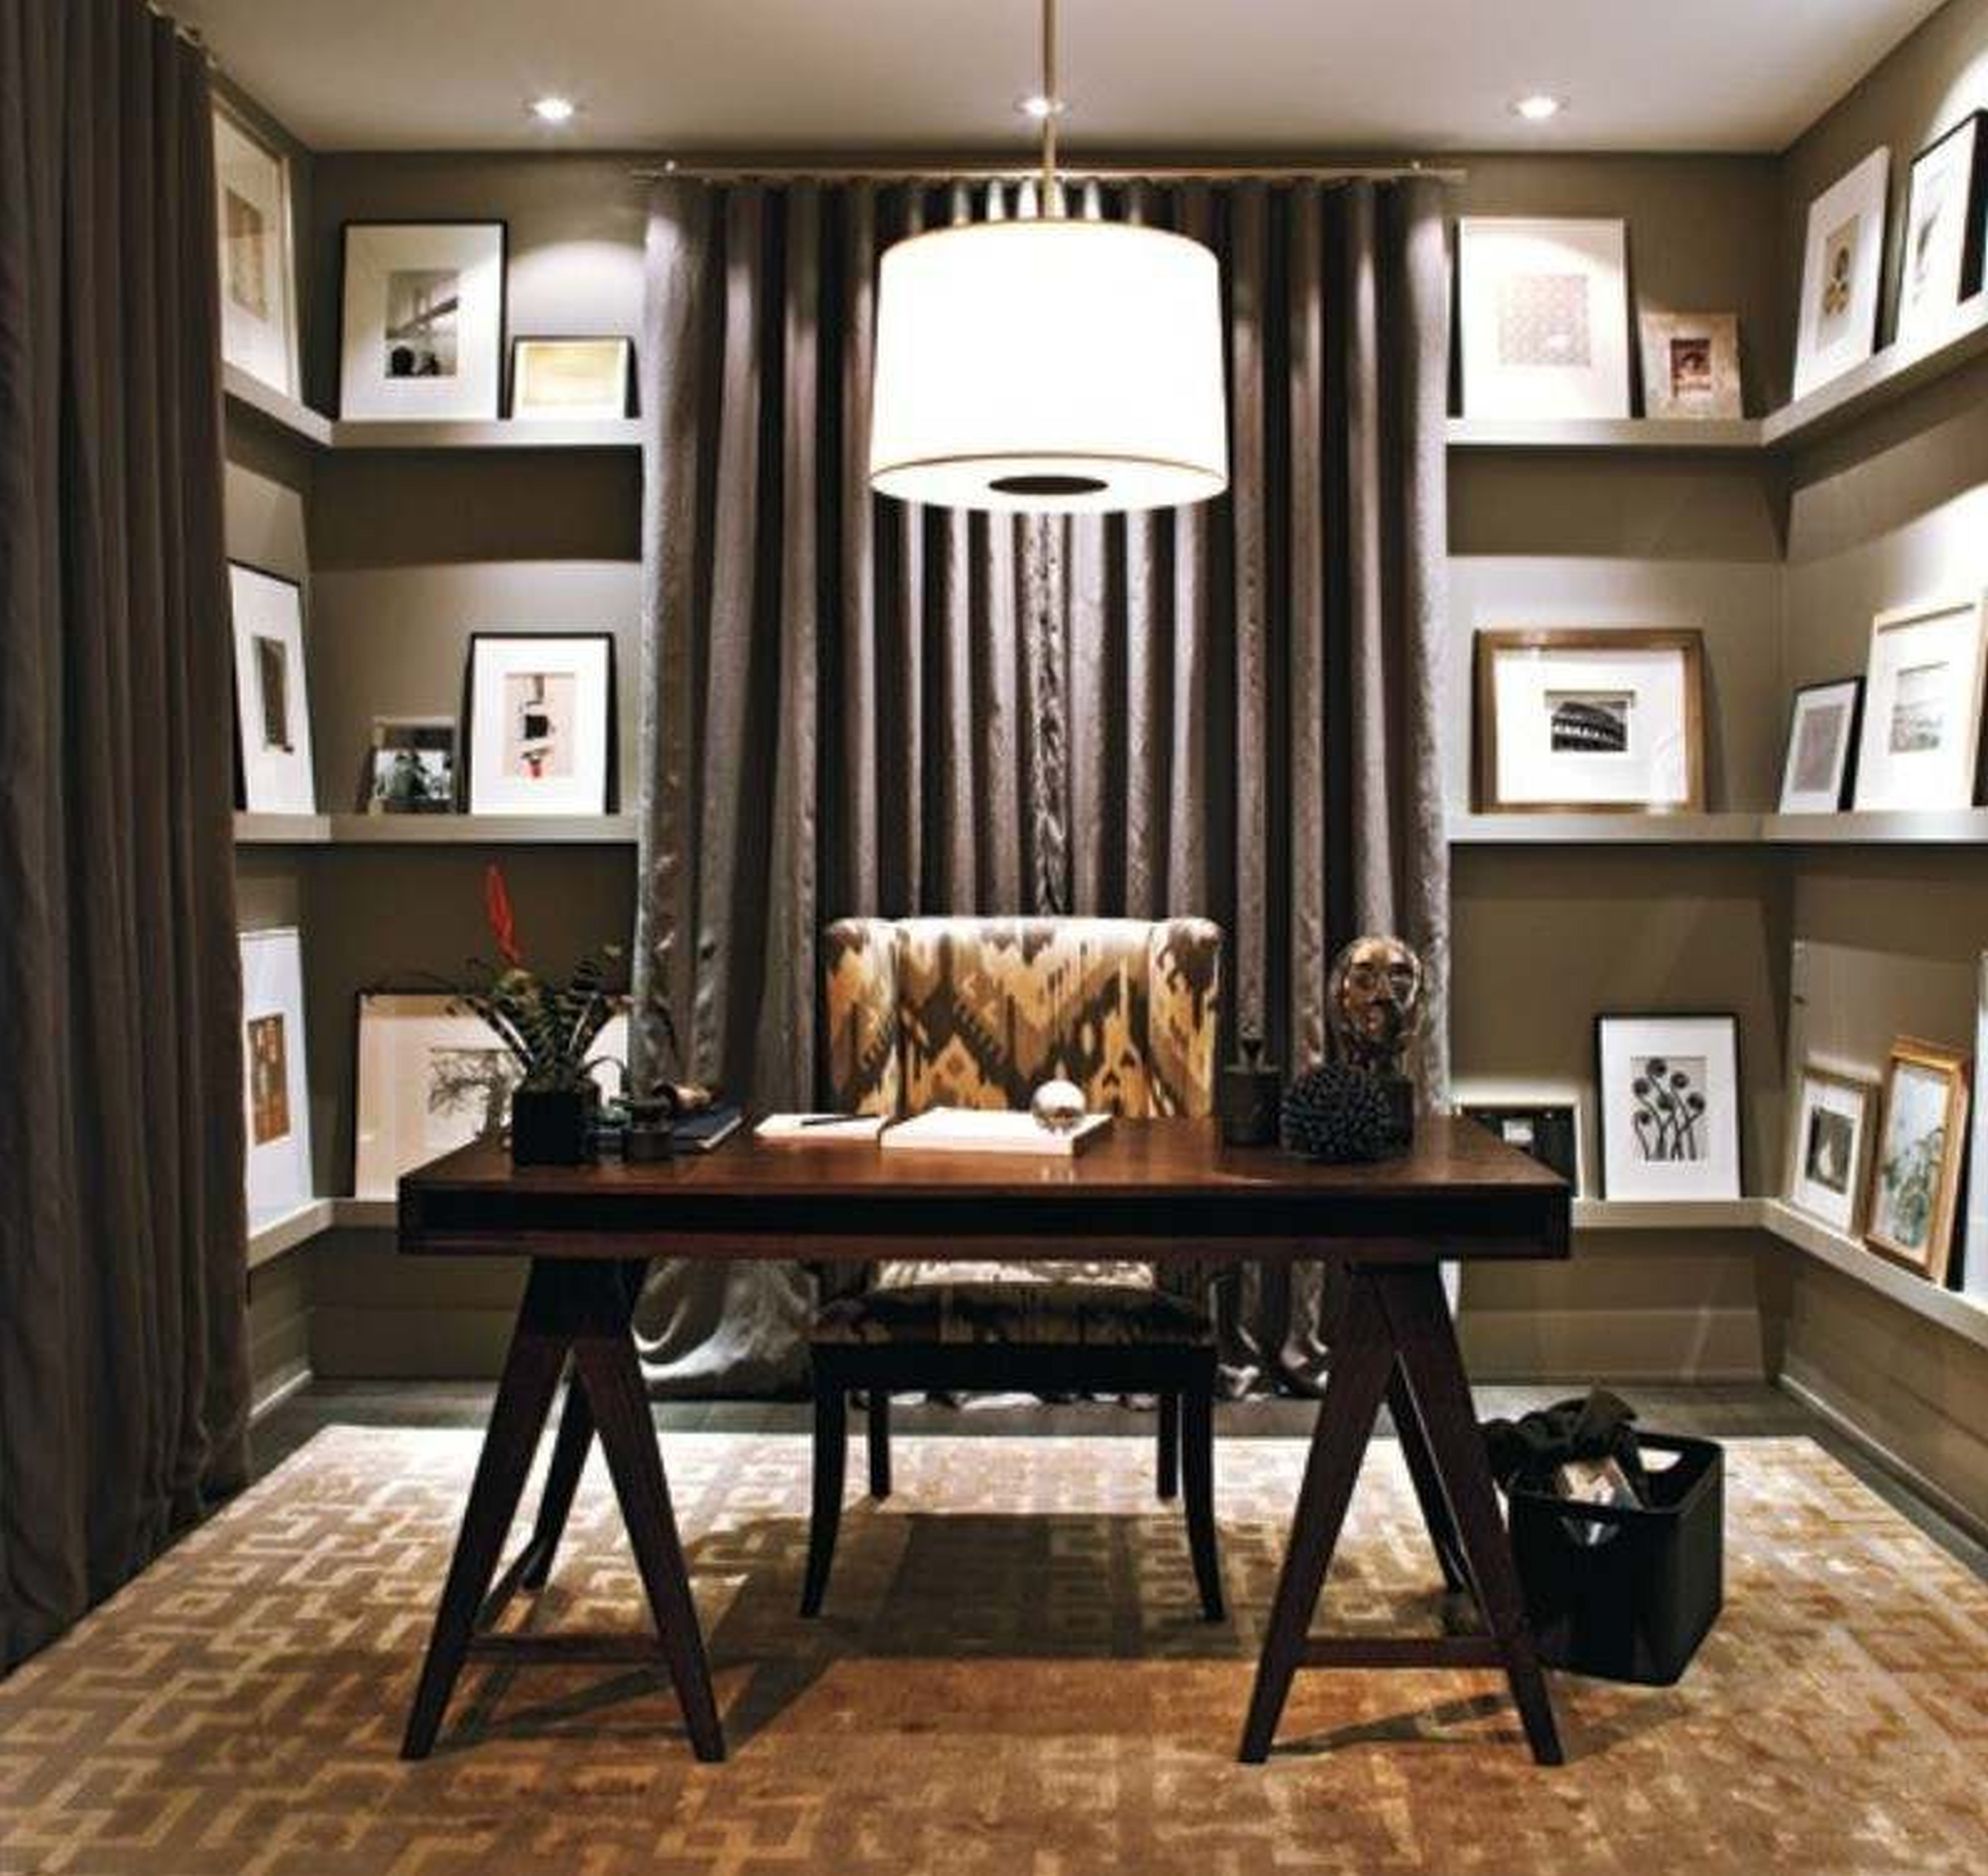 Awesome small home office design with cool chandeliers lighting